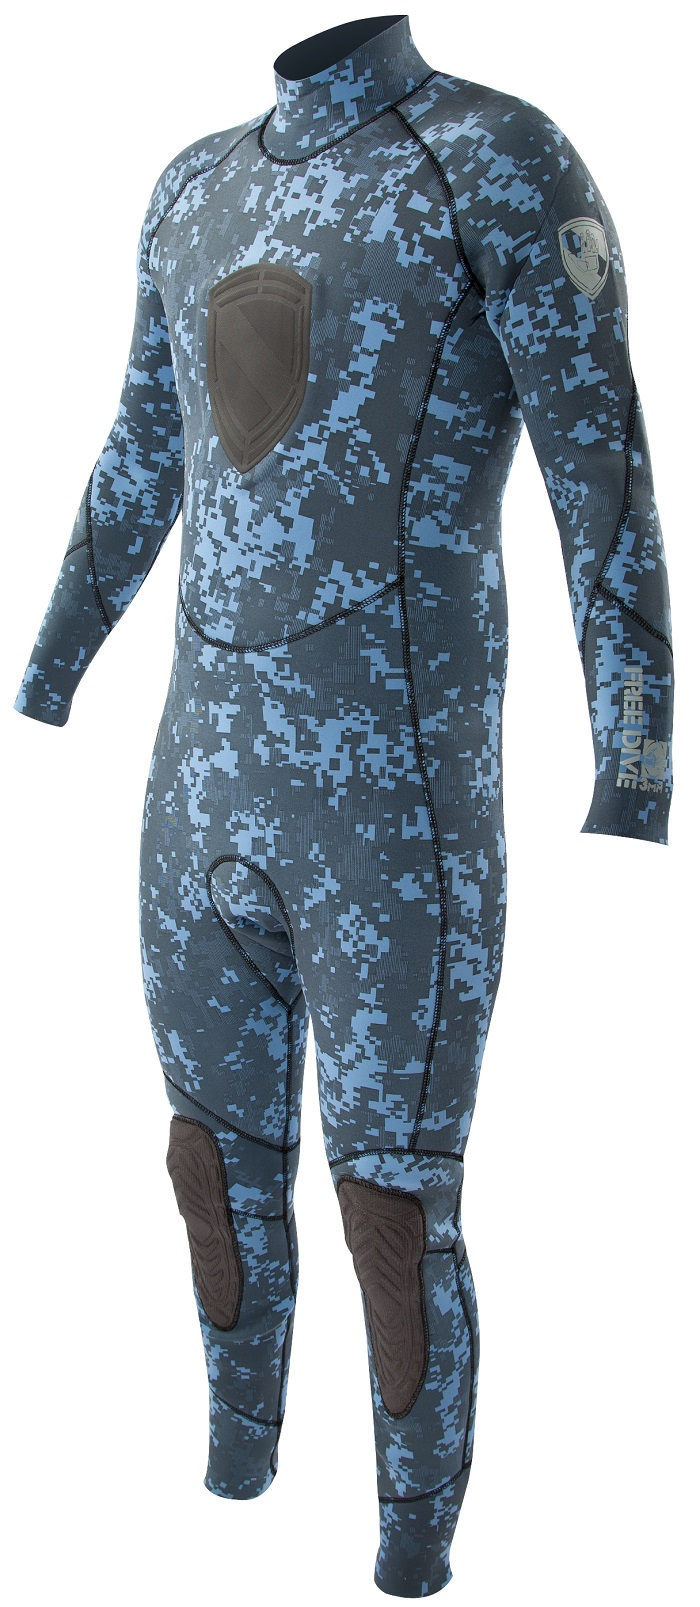 Body Glove 3mm EX3 Men's Free Dive Camo Wetsuit- NEW Blue Camo! -